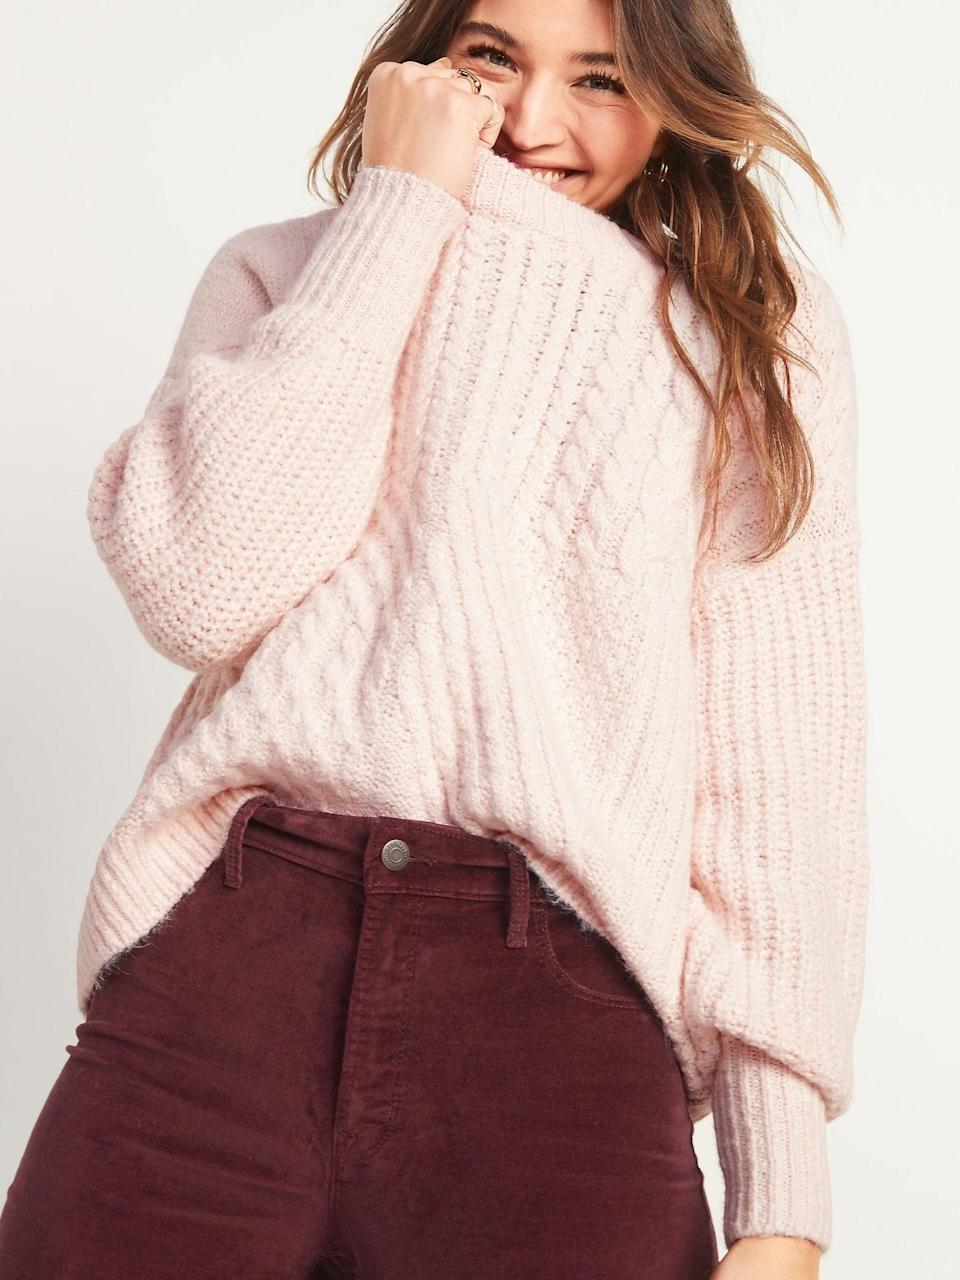 <p>Customers say this <span>Cozy Cable-Knit Blouson-Sleeve Sweater</span> ($23, originally $45) is so soft and cozy.</p>